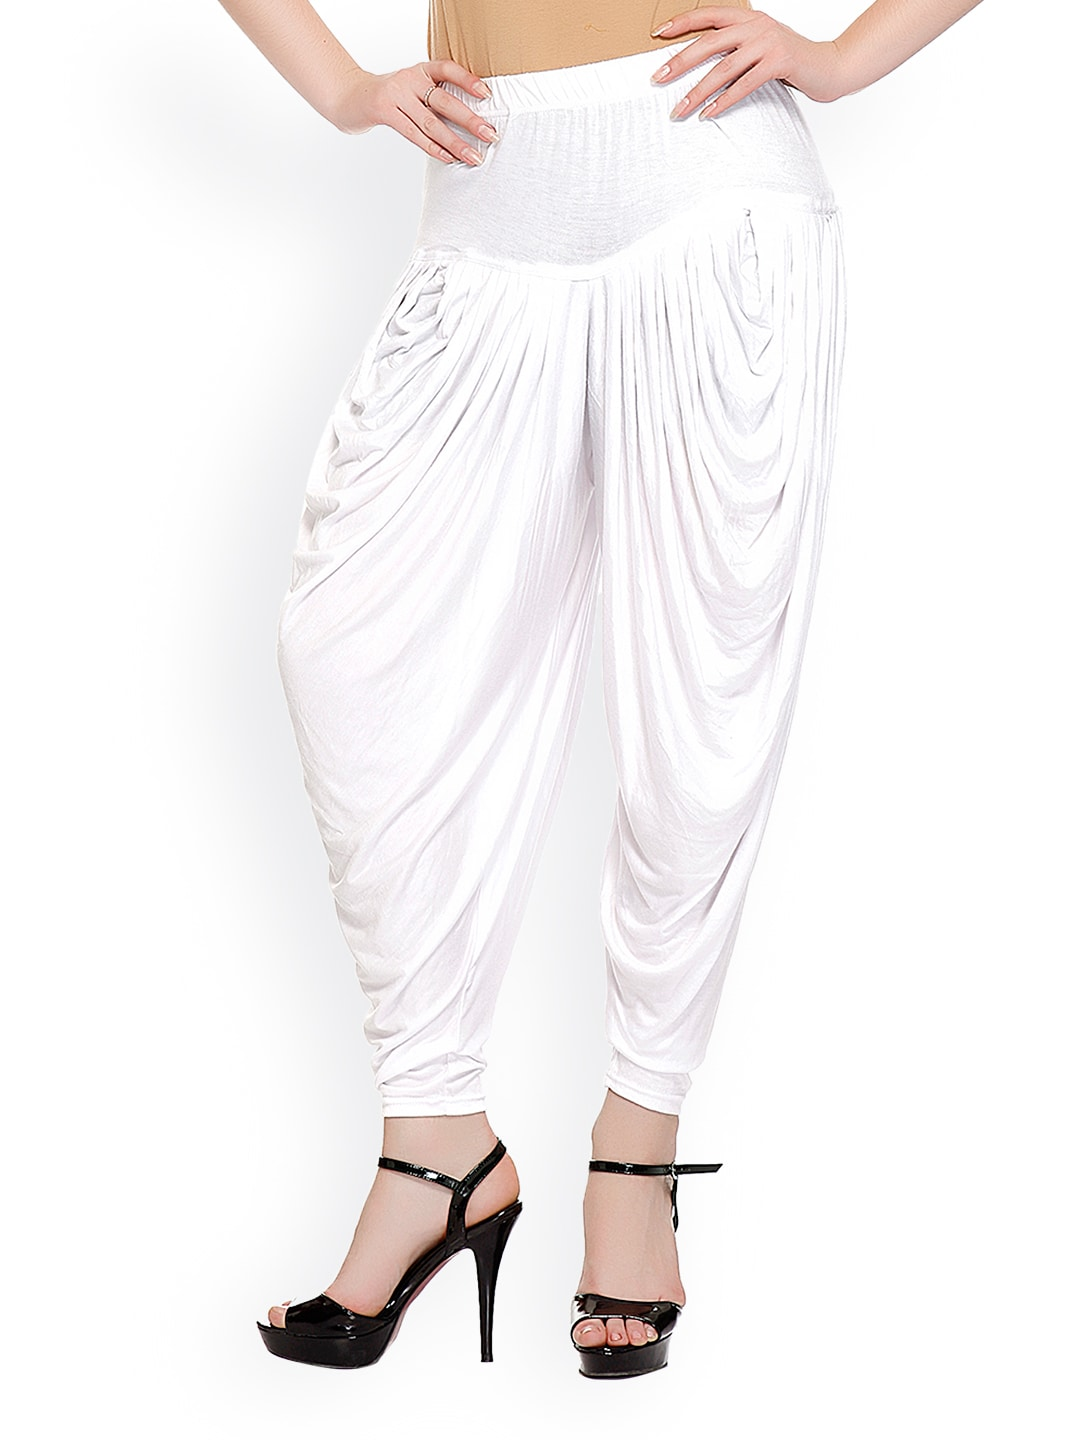 Women's Harem Pants. Prices start as low as $ FREE International Shipping for all orders over $